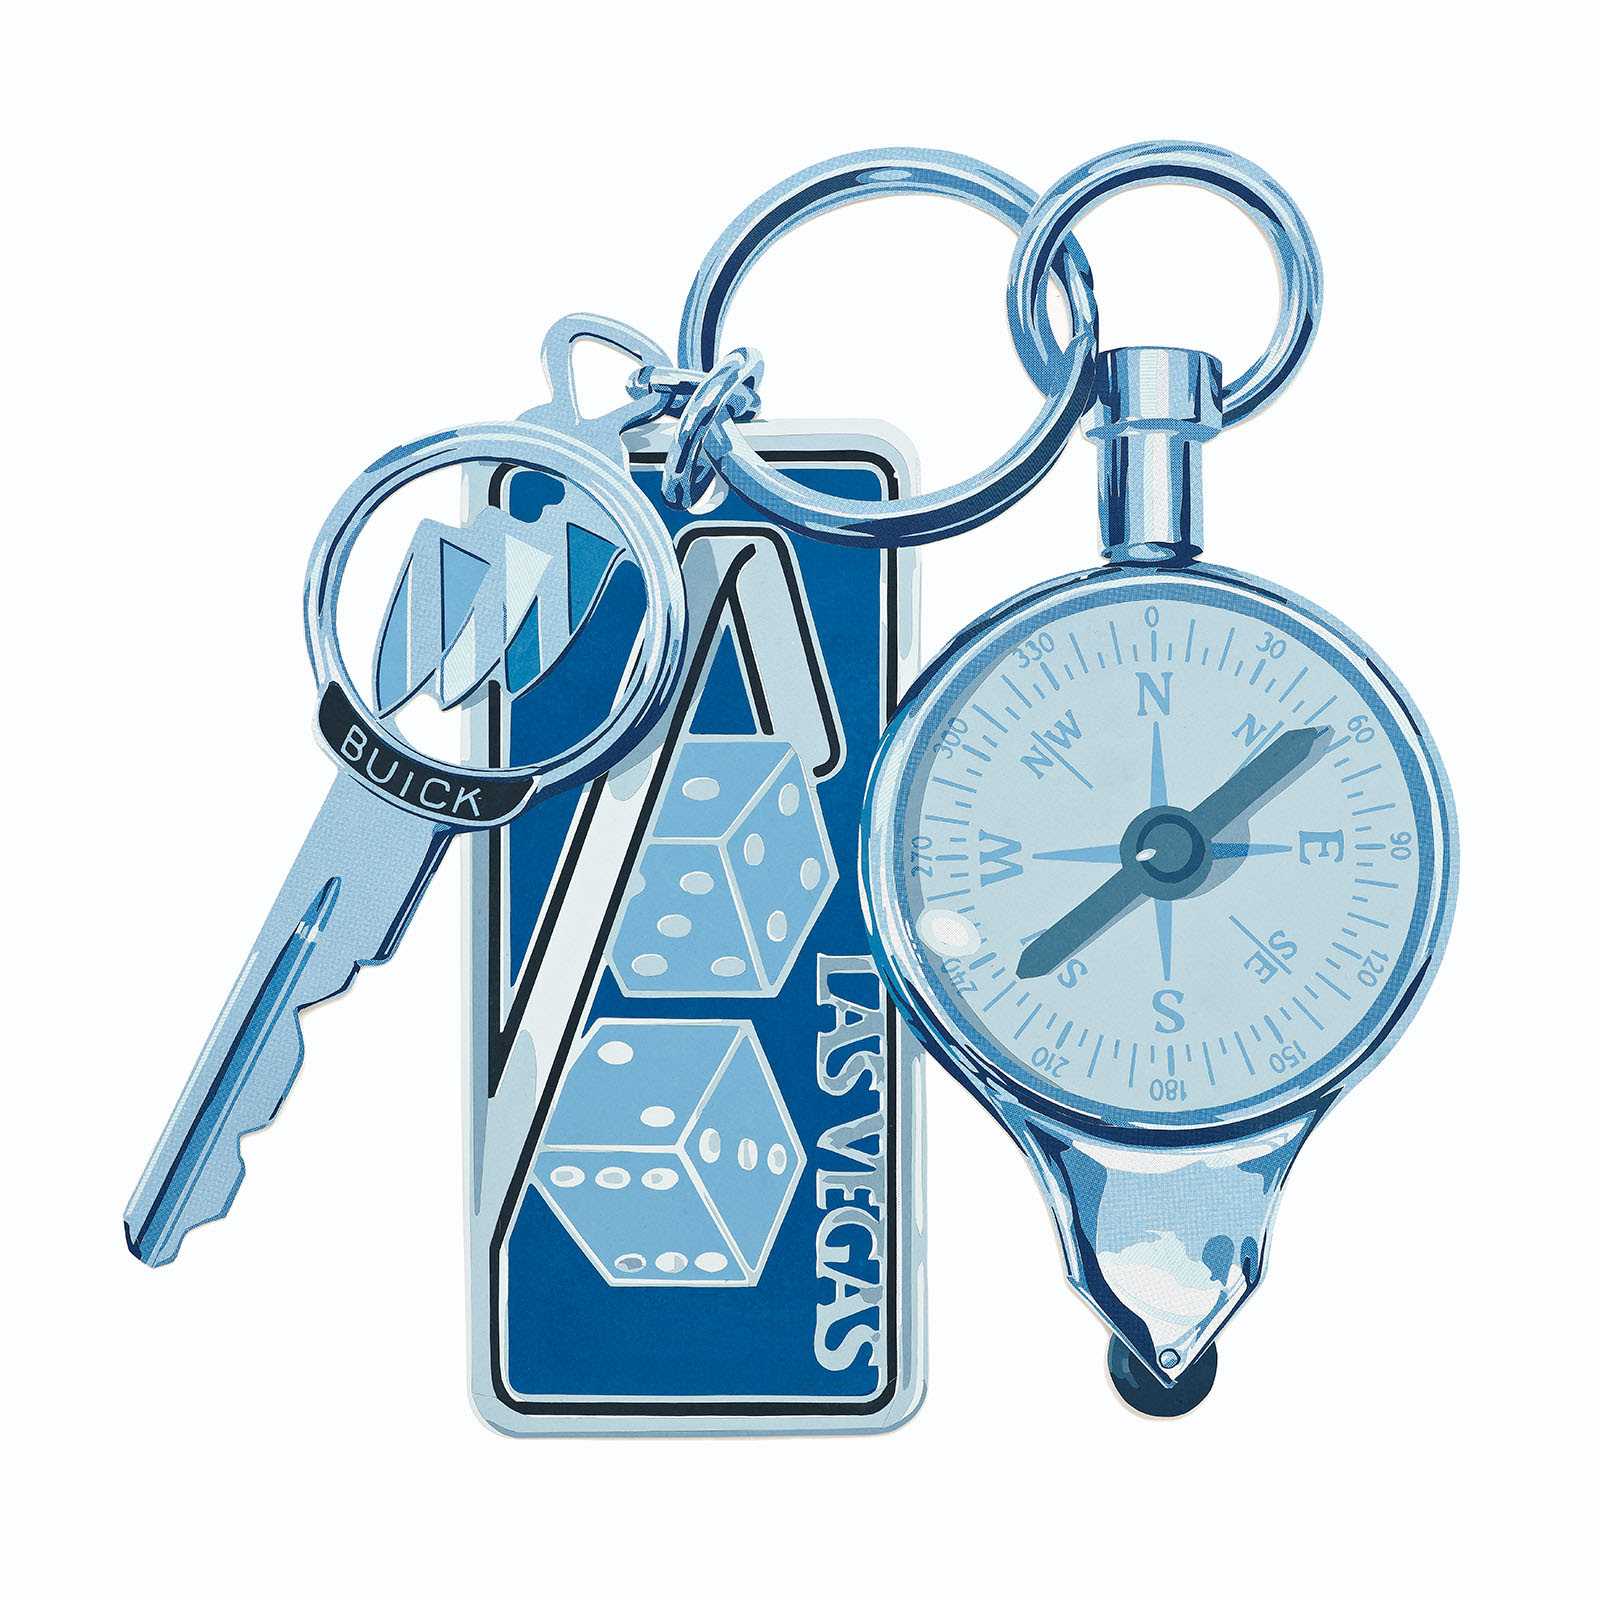 Fine art exhibition image by nick doyle titled there is no true north depicting a key and keychain and compass in blue